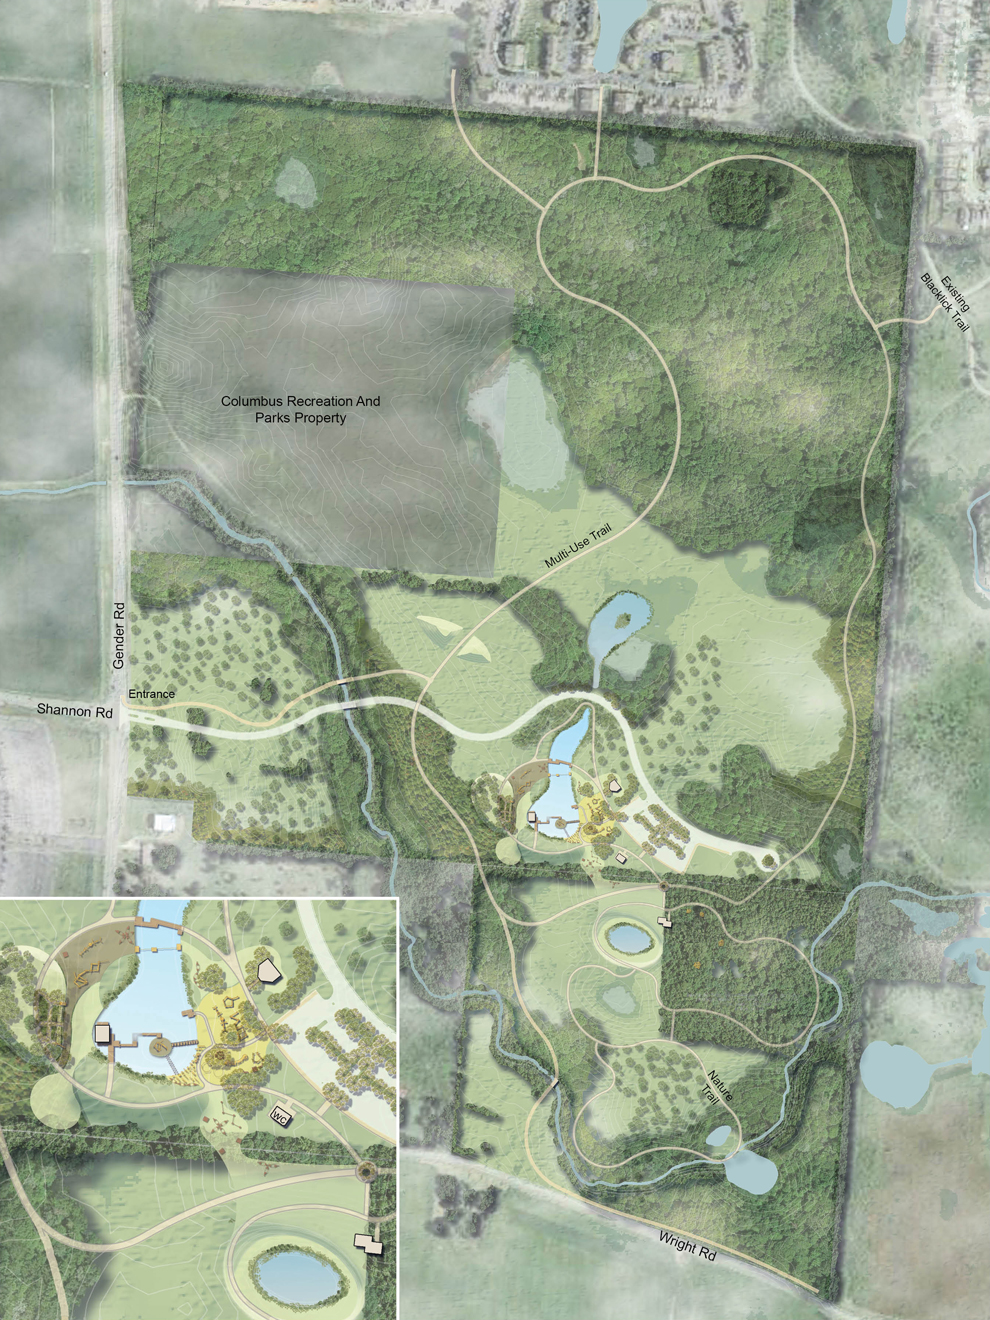 Conceptual map of the Burning Lake area at Pickerington Ponds Metro Park